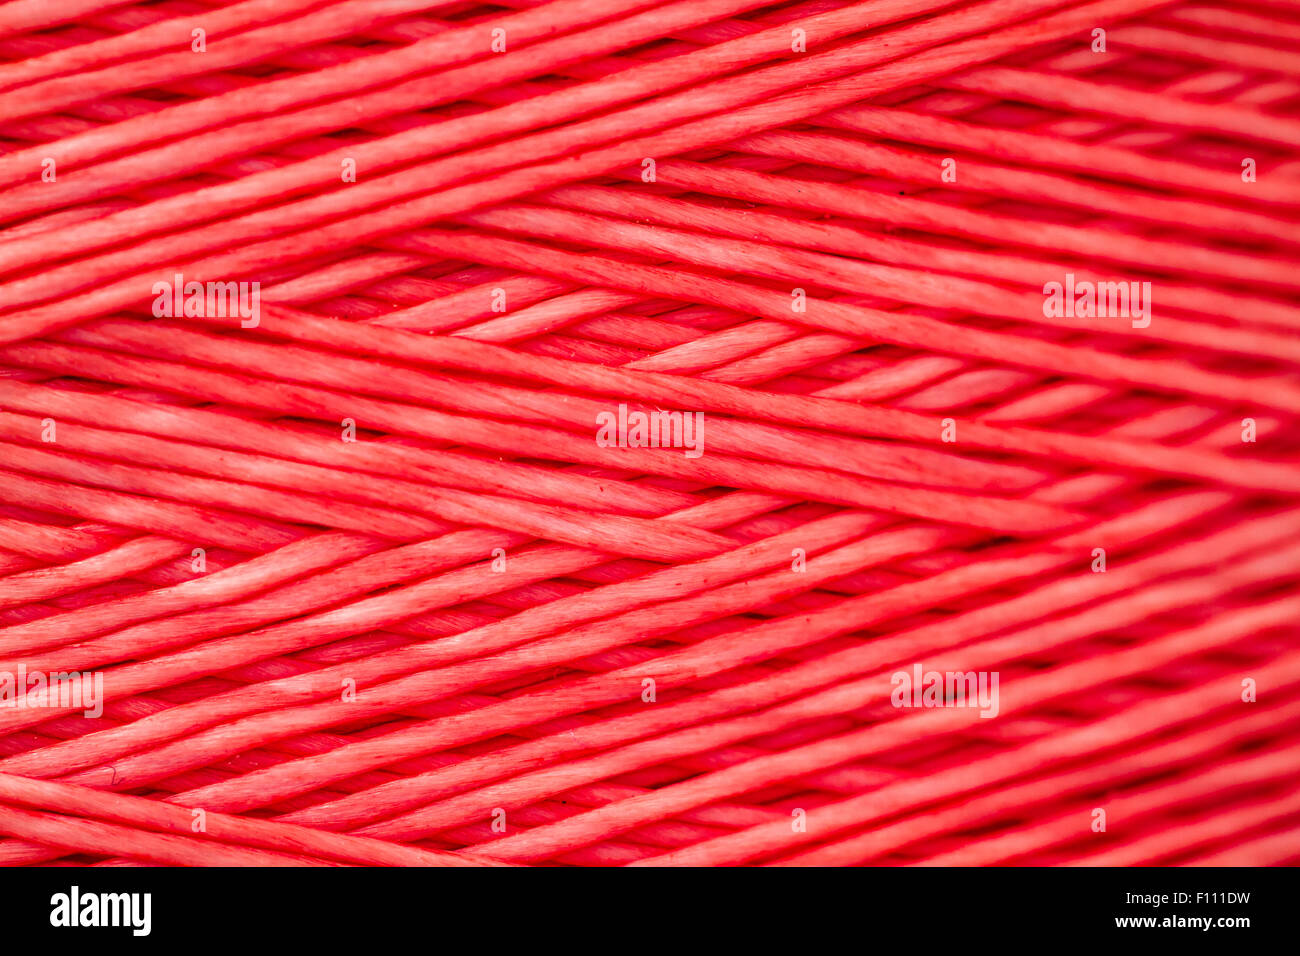 Close up of synthetic colored thread, texture and background - Stock Image